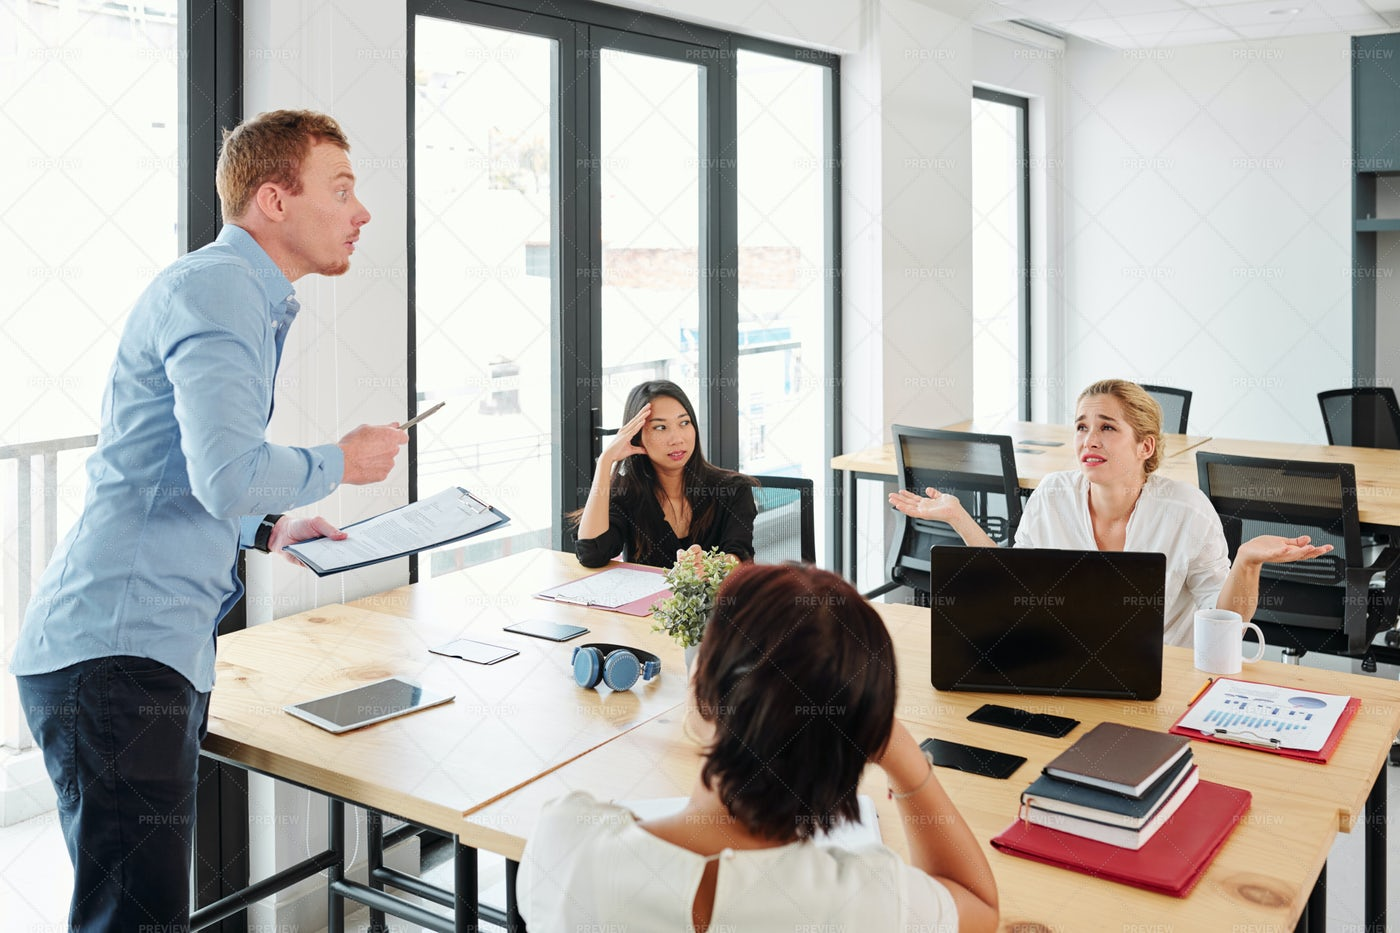 Leader With Business Team At Meeting: Stock Photos